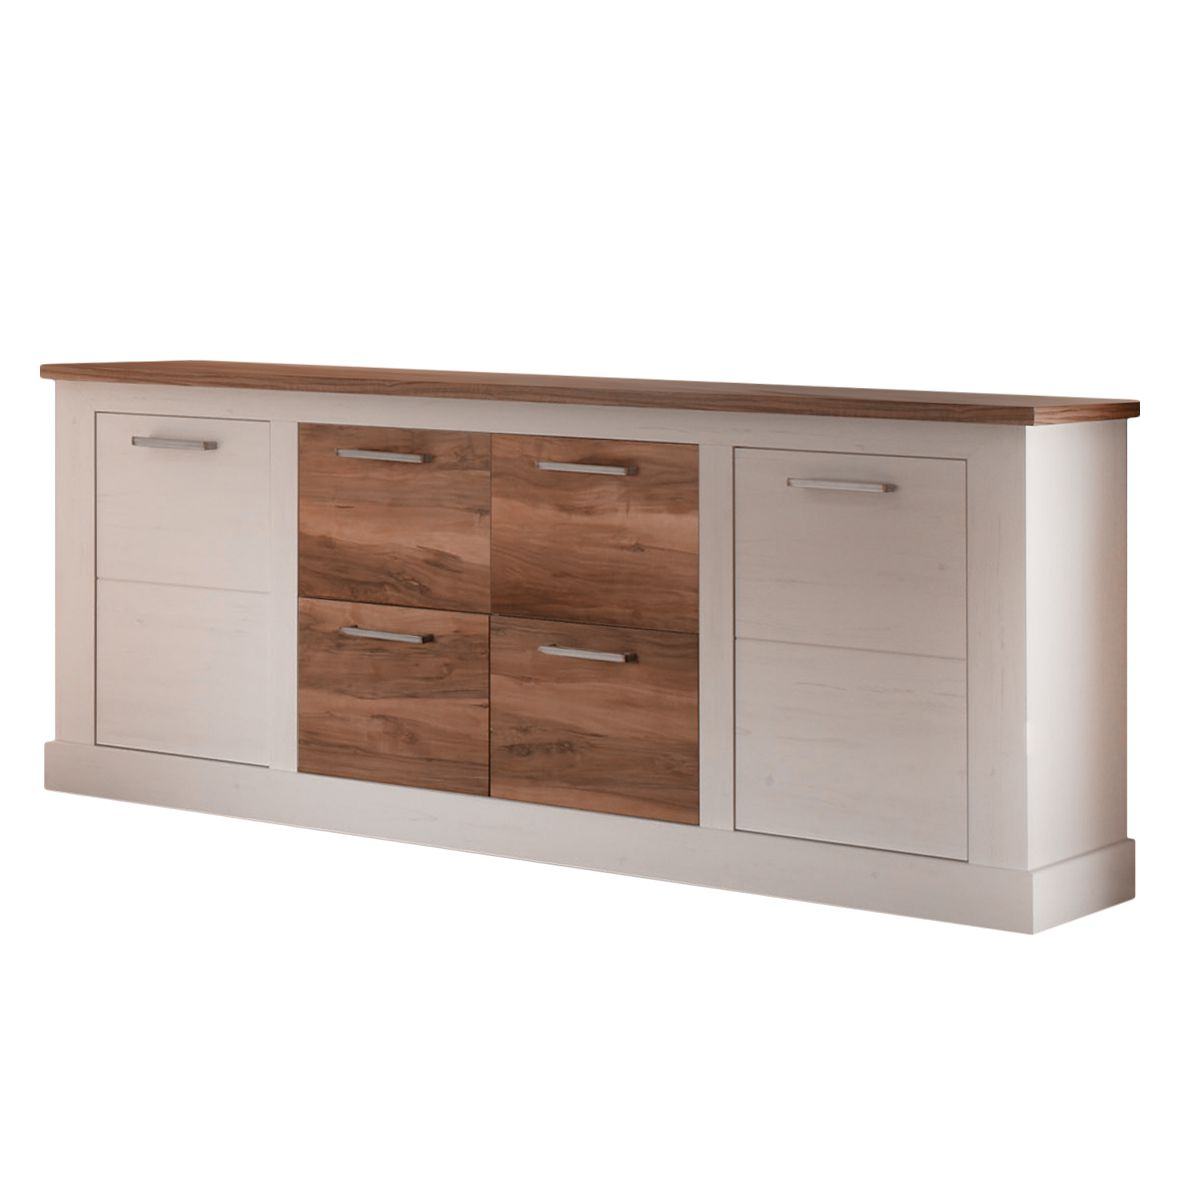 Highboard Nussbaum Satin Nussbaum Dekor Simple Havanna Midischrank T In Glas Schwarz